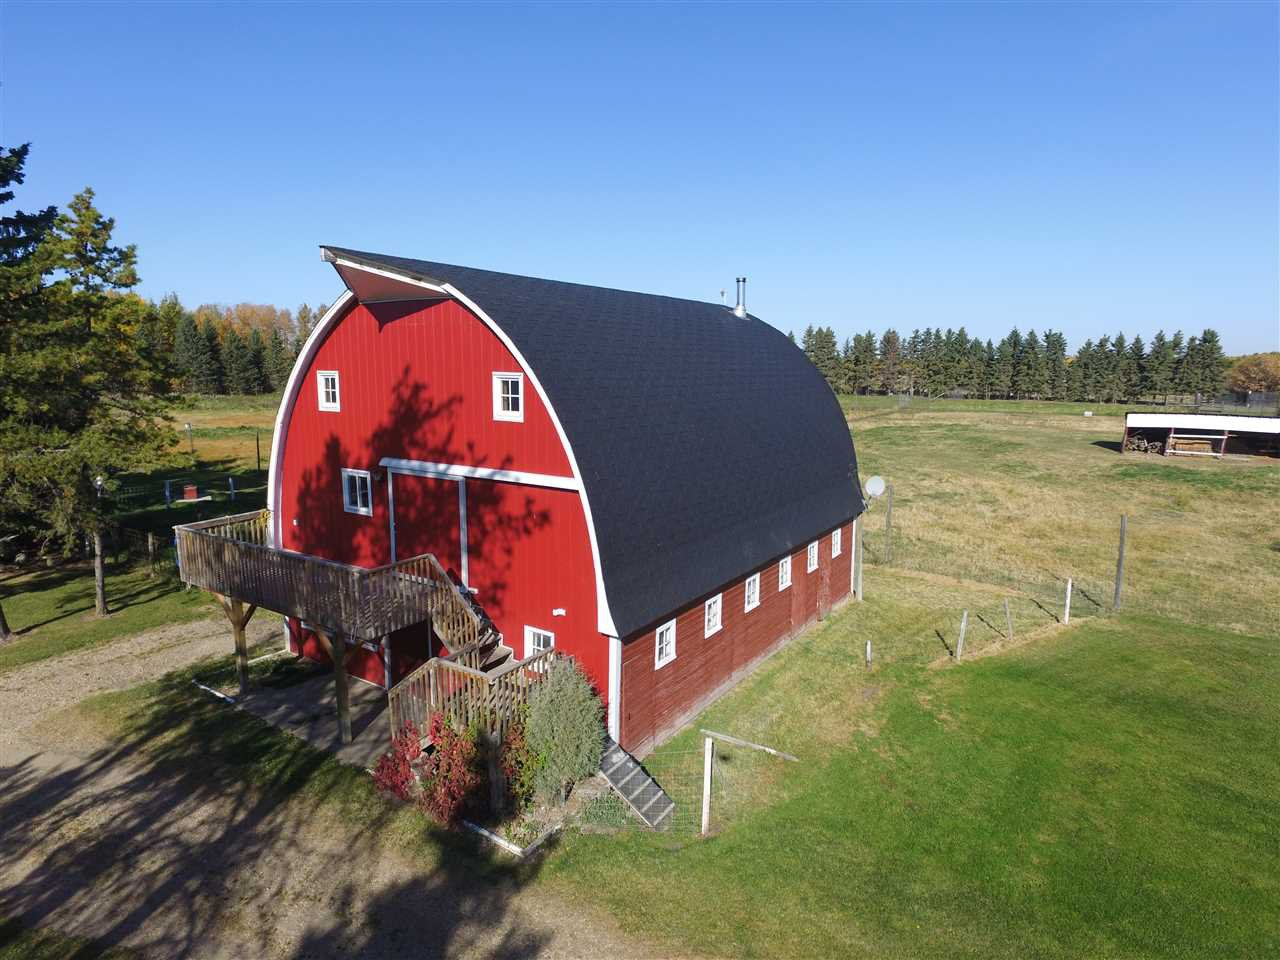 Photo 7: Photos: 273054A Hwy 13: Rural Wetaskiwin County House for sale : MLS®# E4216850